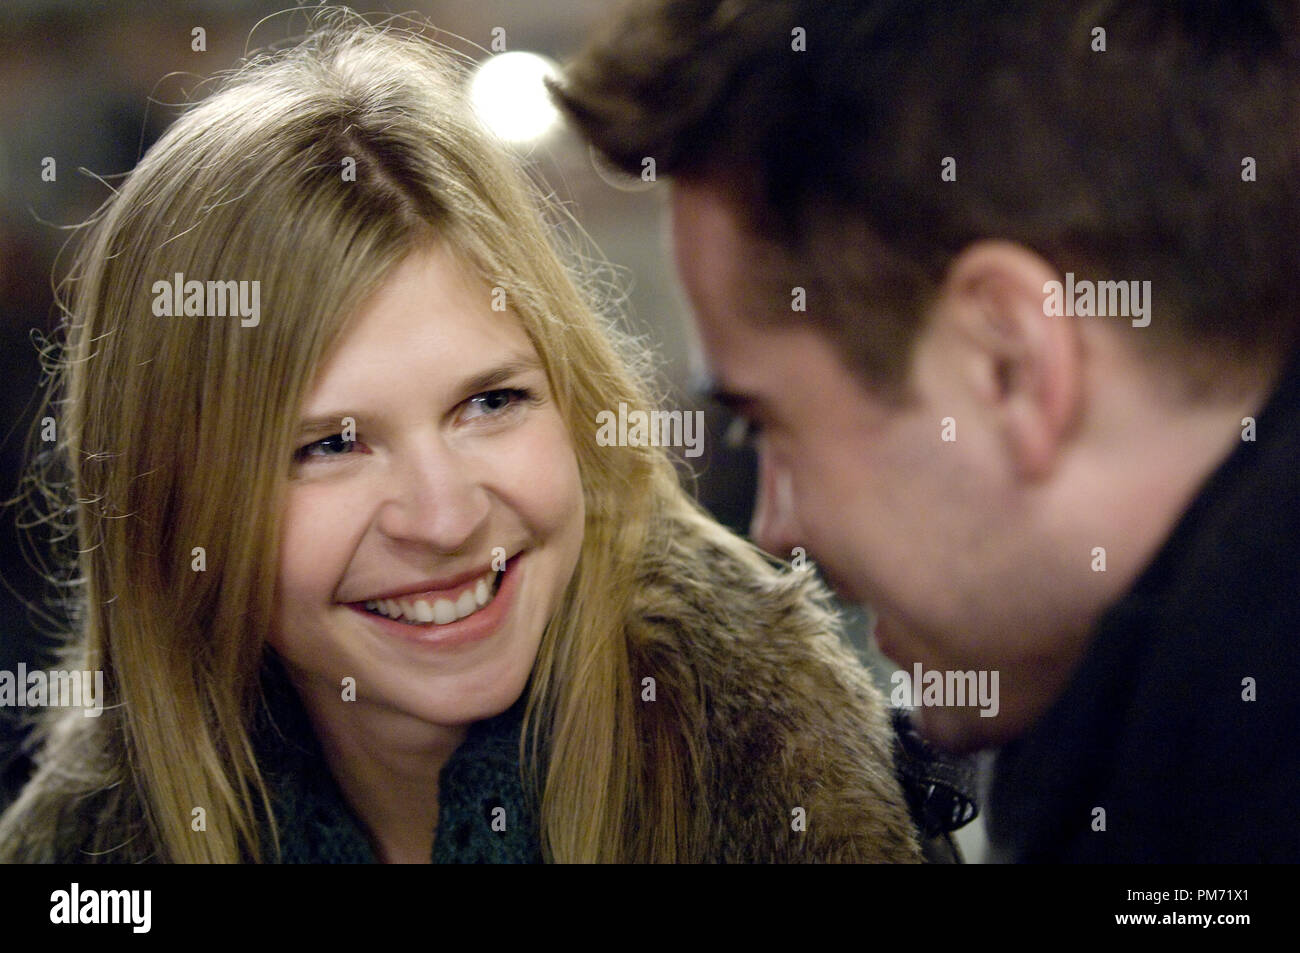 Film Still from 'In Bruges' Clemence Poesy, Colin Farrell © 2008 Focus Features Photo credit: Jaap Buitendijk  File Reference # 30755253THA  For Editorial Use Only -  All Rights Reserved - Stock Image